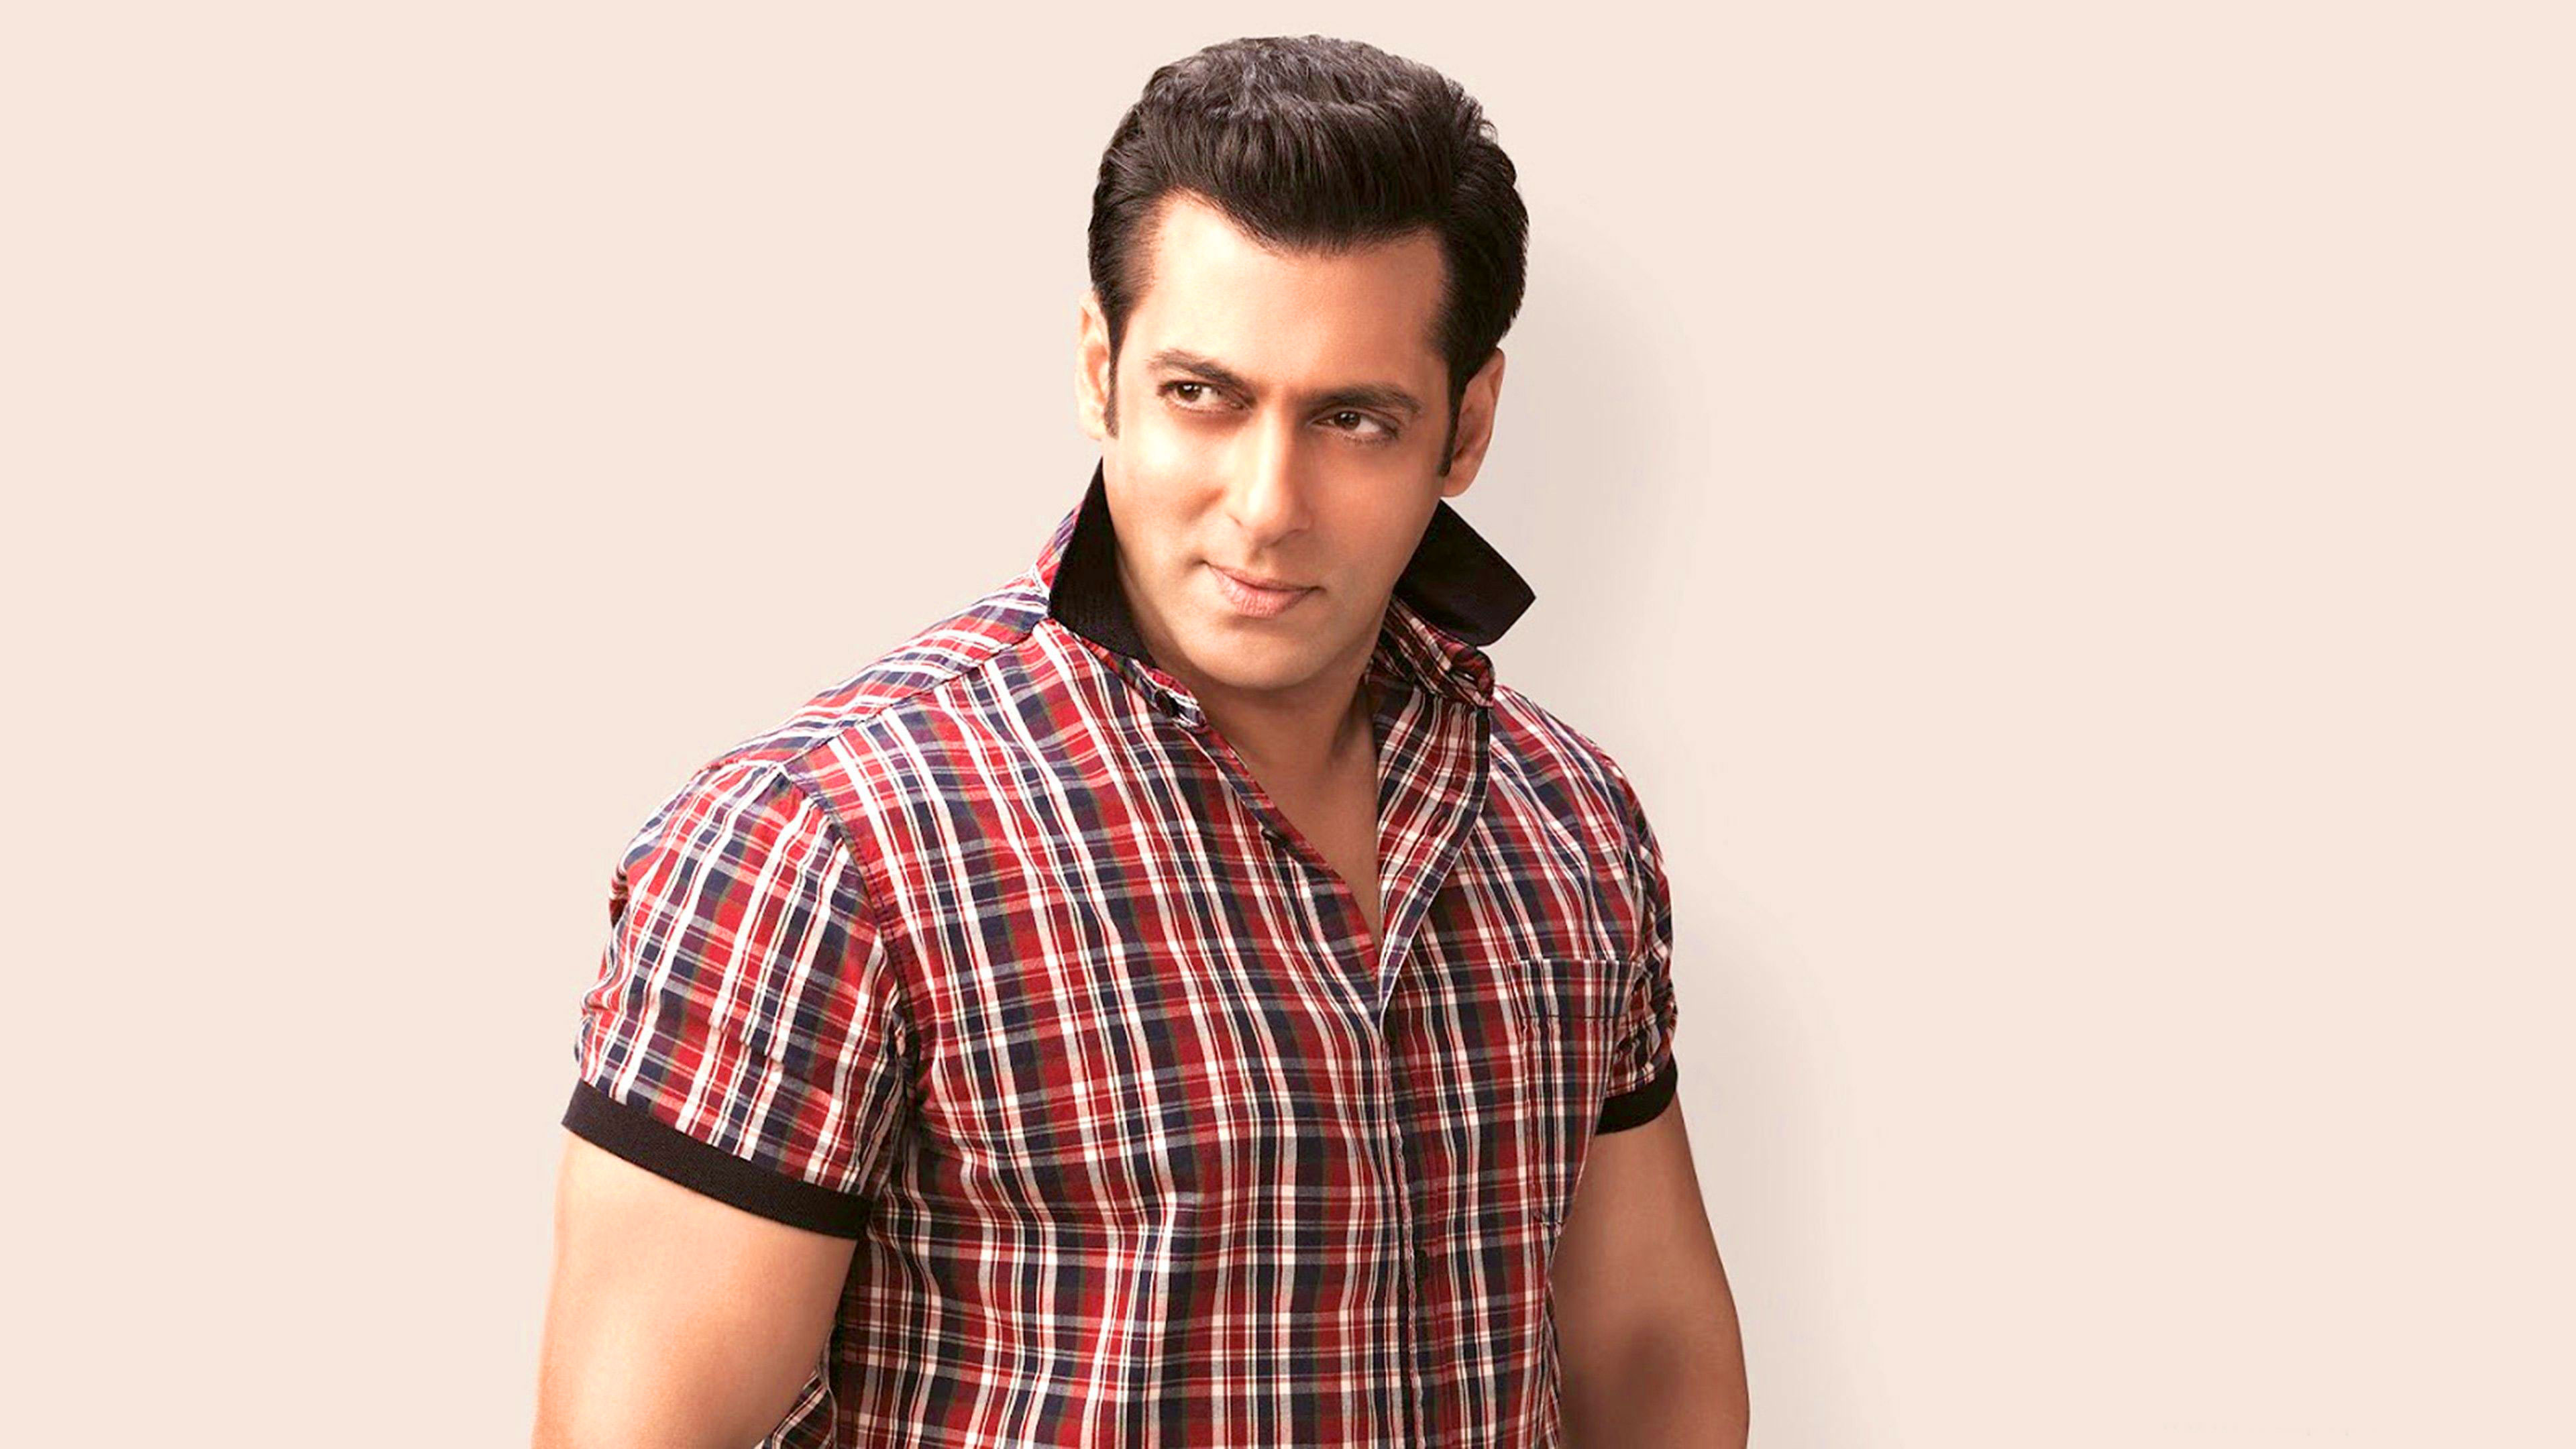 Superstar Salman Khan Wallpaper Free Download